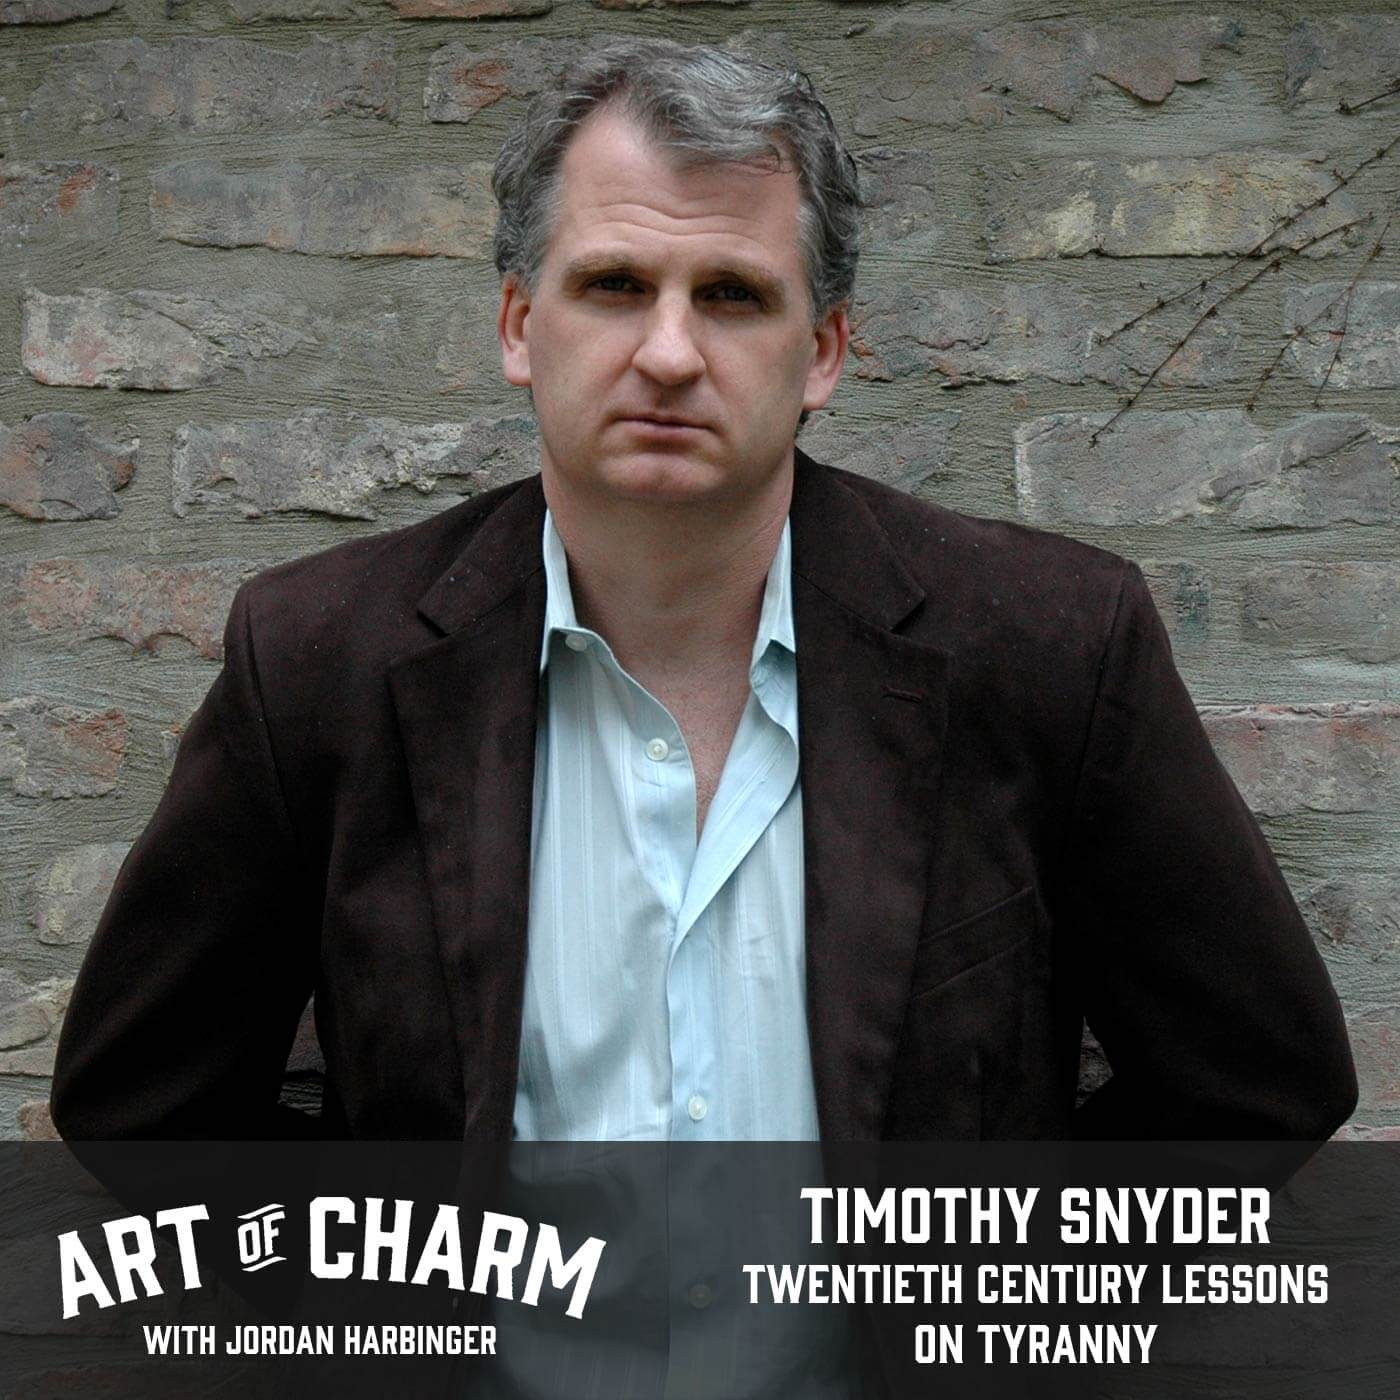 Timothy Snyder | Twentieth Century Lessons on Tyranny (Episode 629)